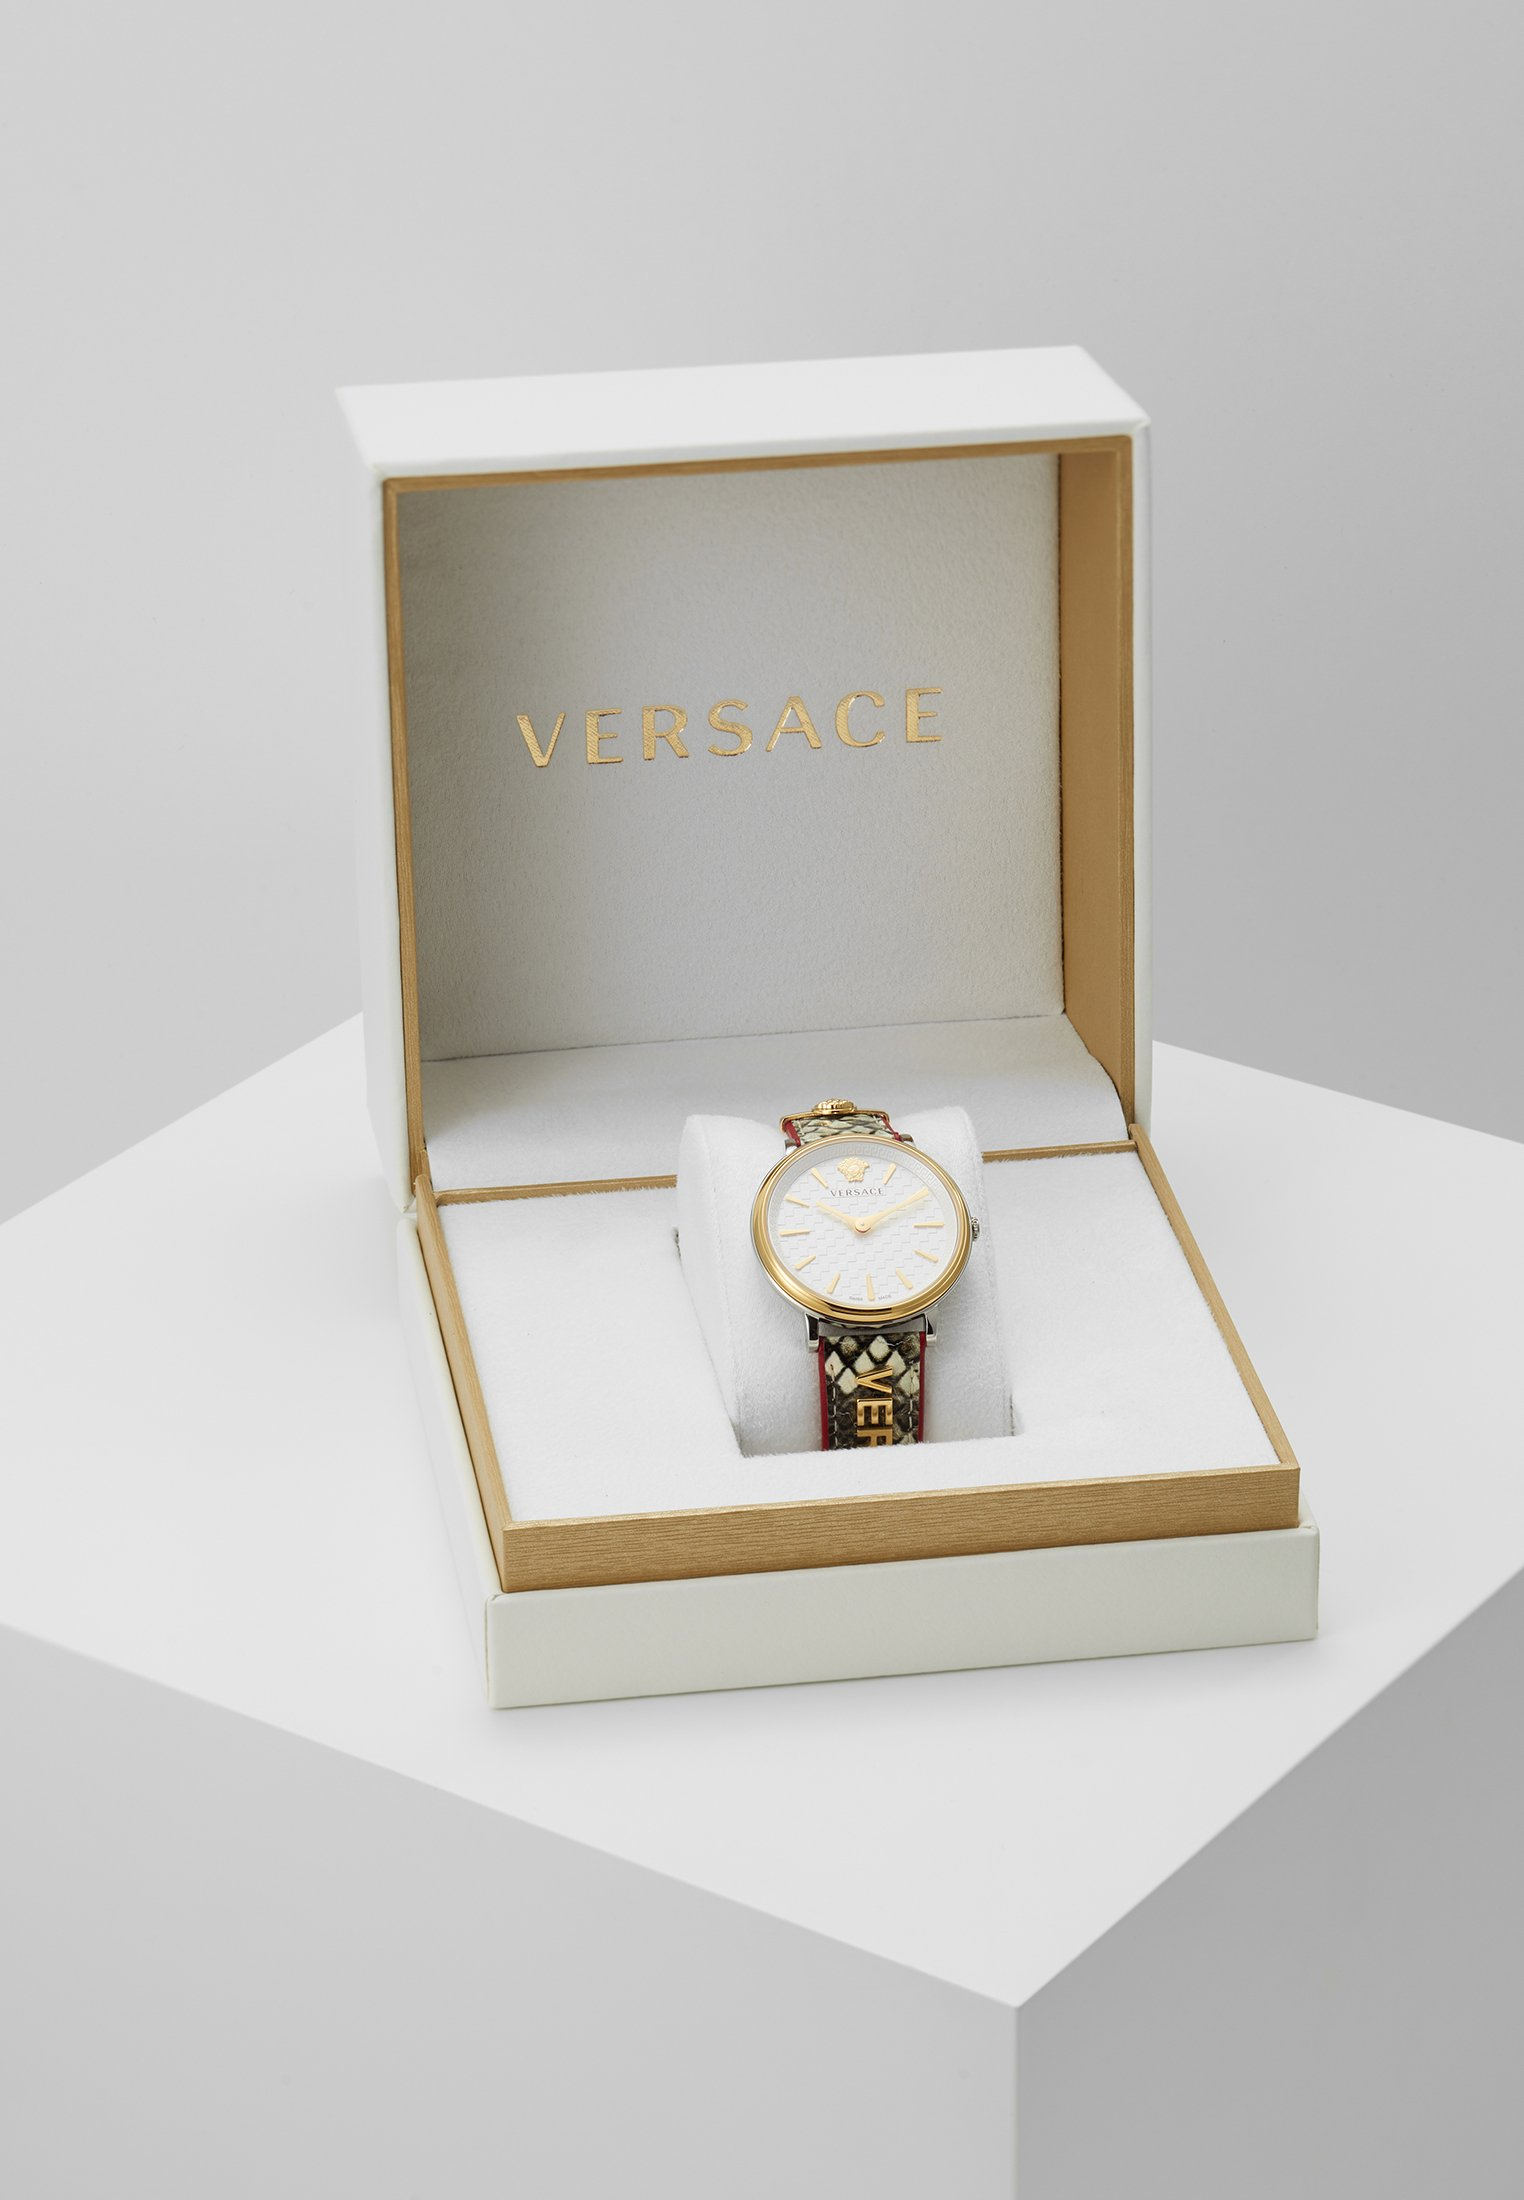 Versace Watches CIRCLE LOGOMANIA EDITION - Klokke - multicolor/beige 9jHcen3cSVYFHmx